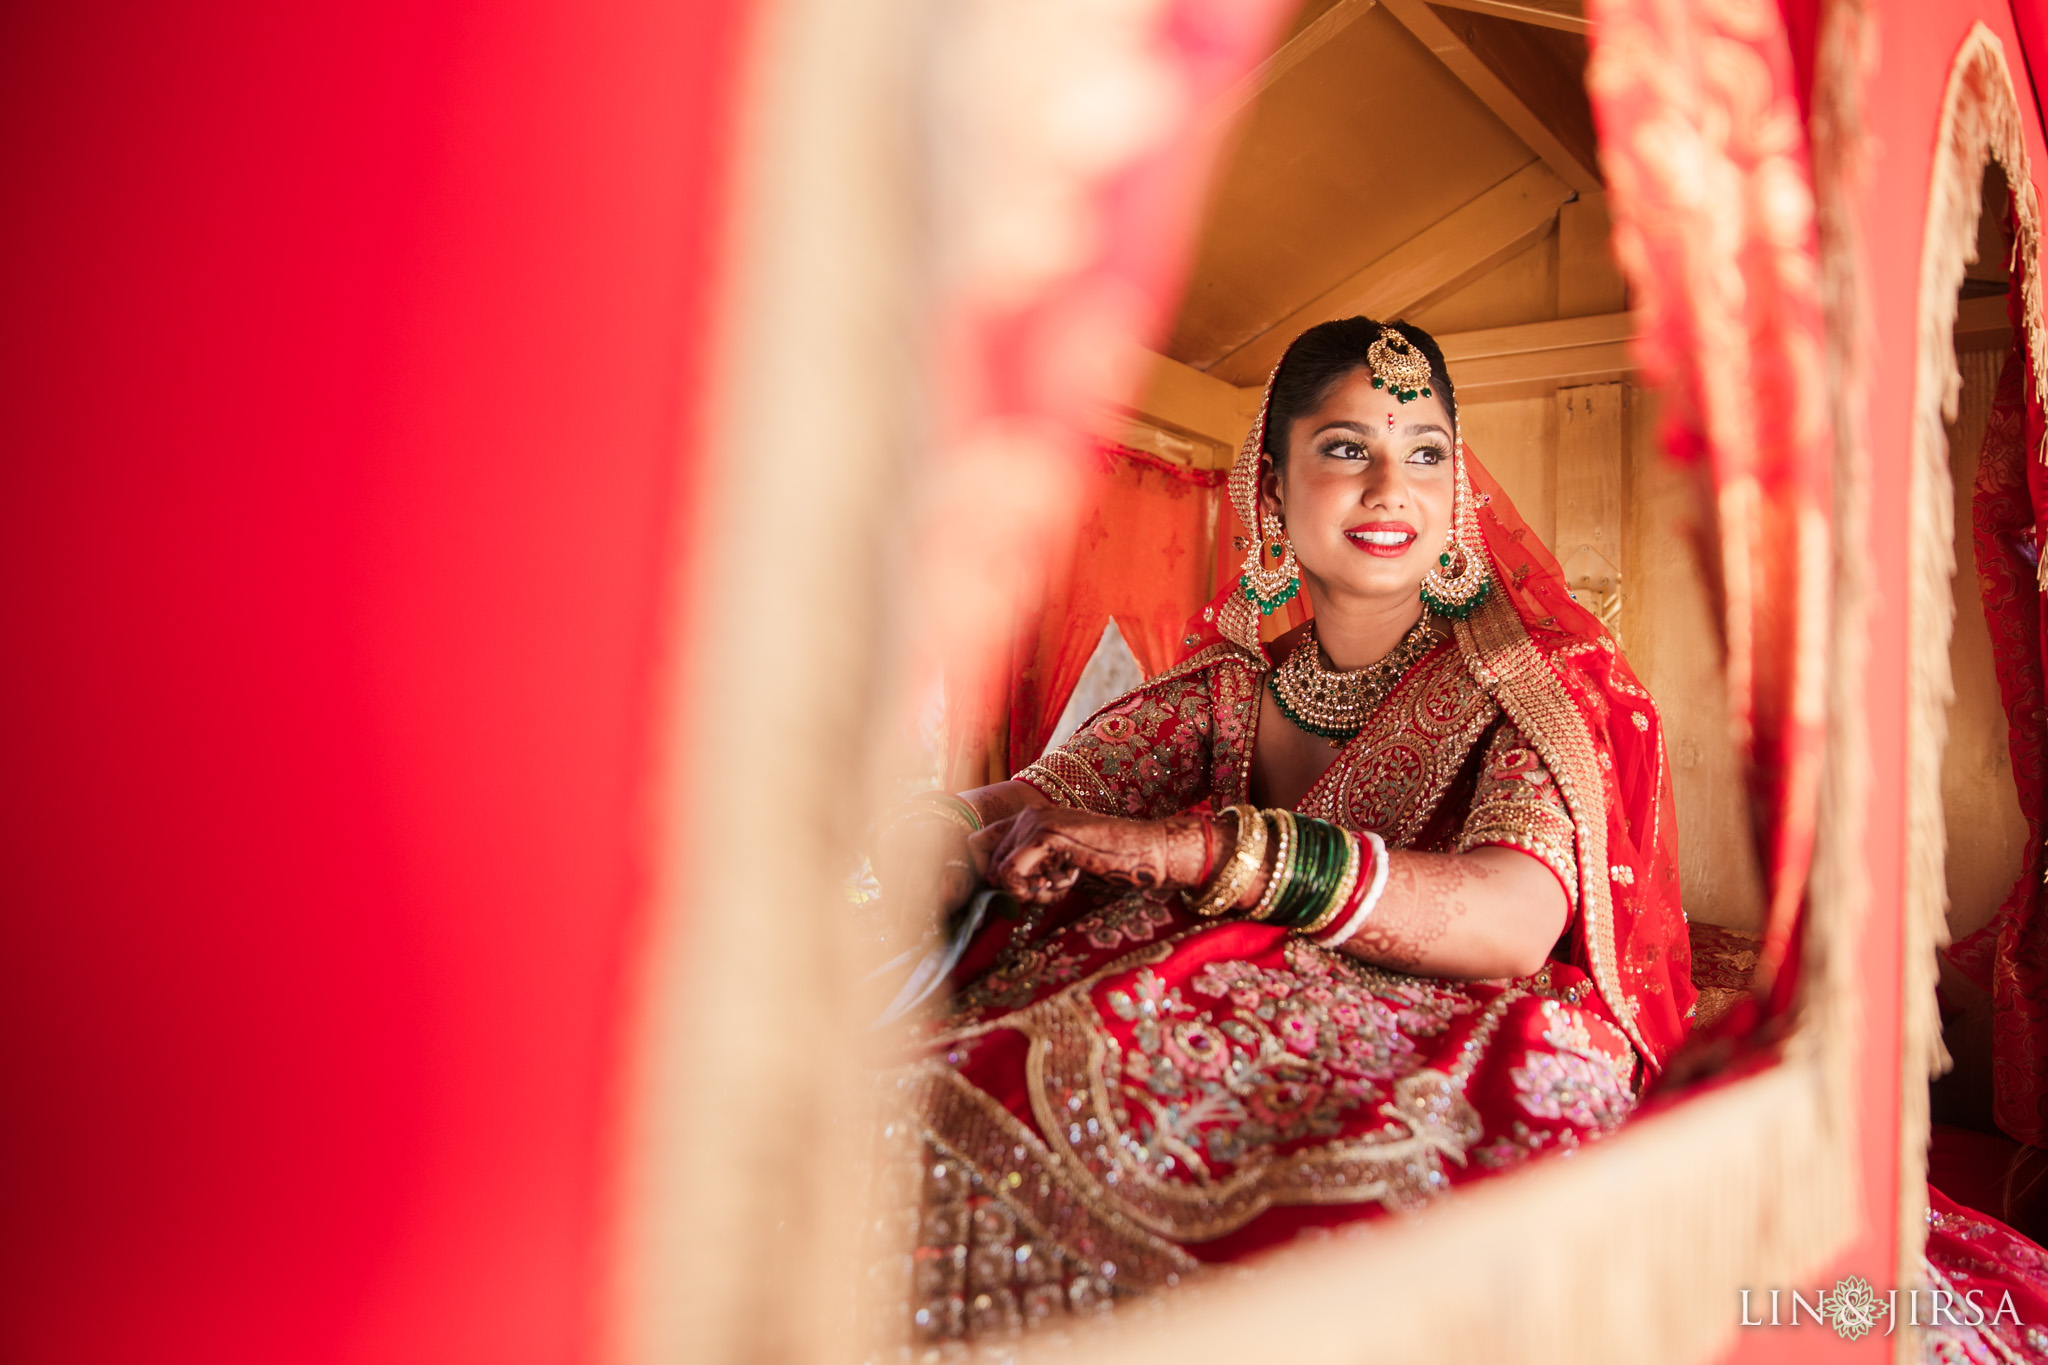 19 Beaches Resort Turks and Caicos Indian Bride Dholi Wedding Photography